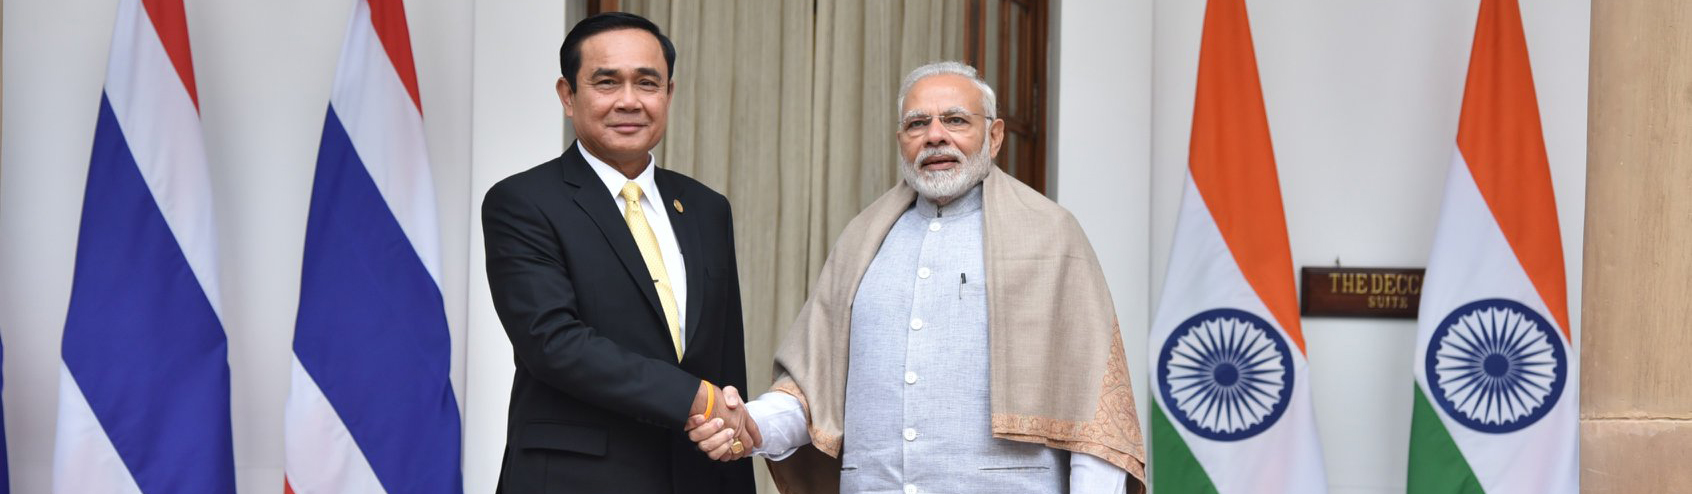 HE Gen. Prayut Chan-o-Cha, Thailand meeting HE Narendra Modi, India on 25 Jan 18 during ASEAN-India Commemorative Summit